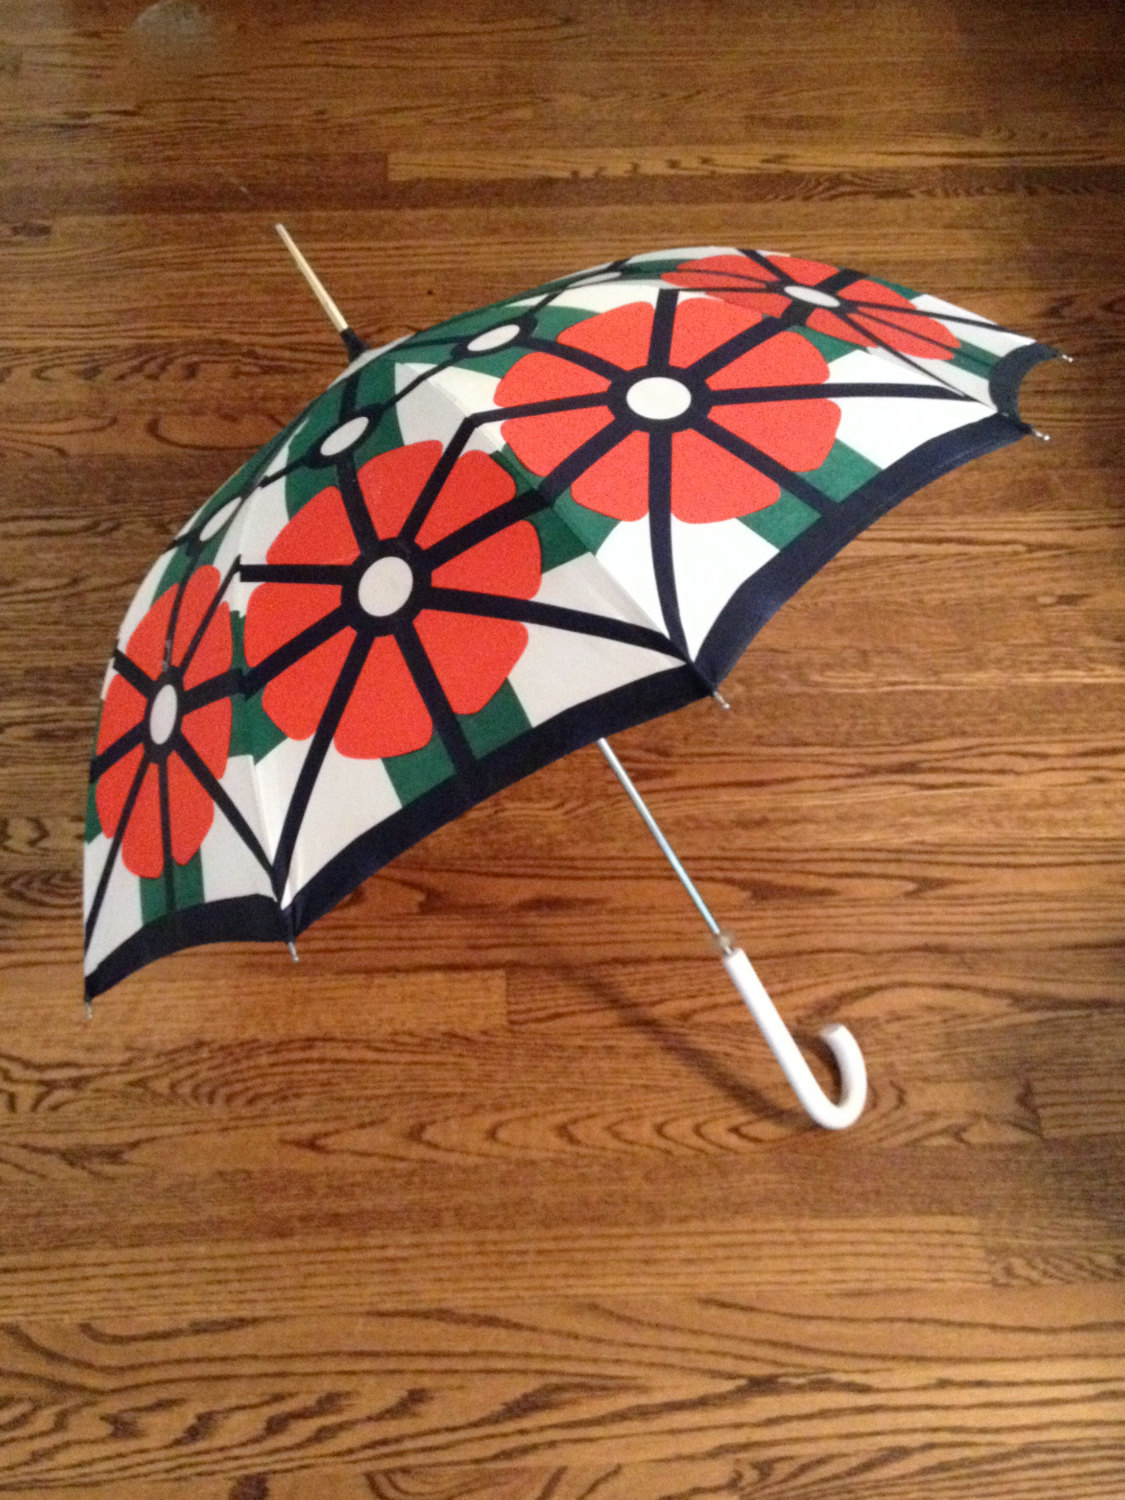 1960s Parisian Lanvin Umbrella from 1006 Osage | Keeper & Co. Blog